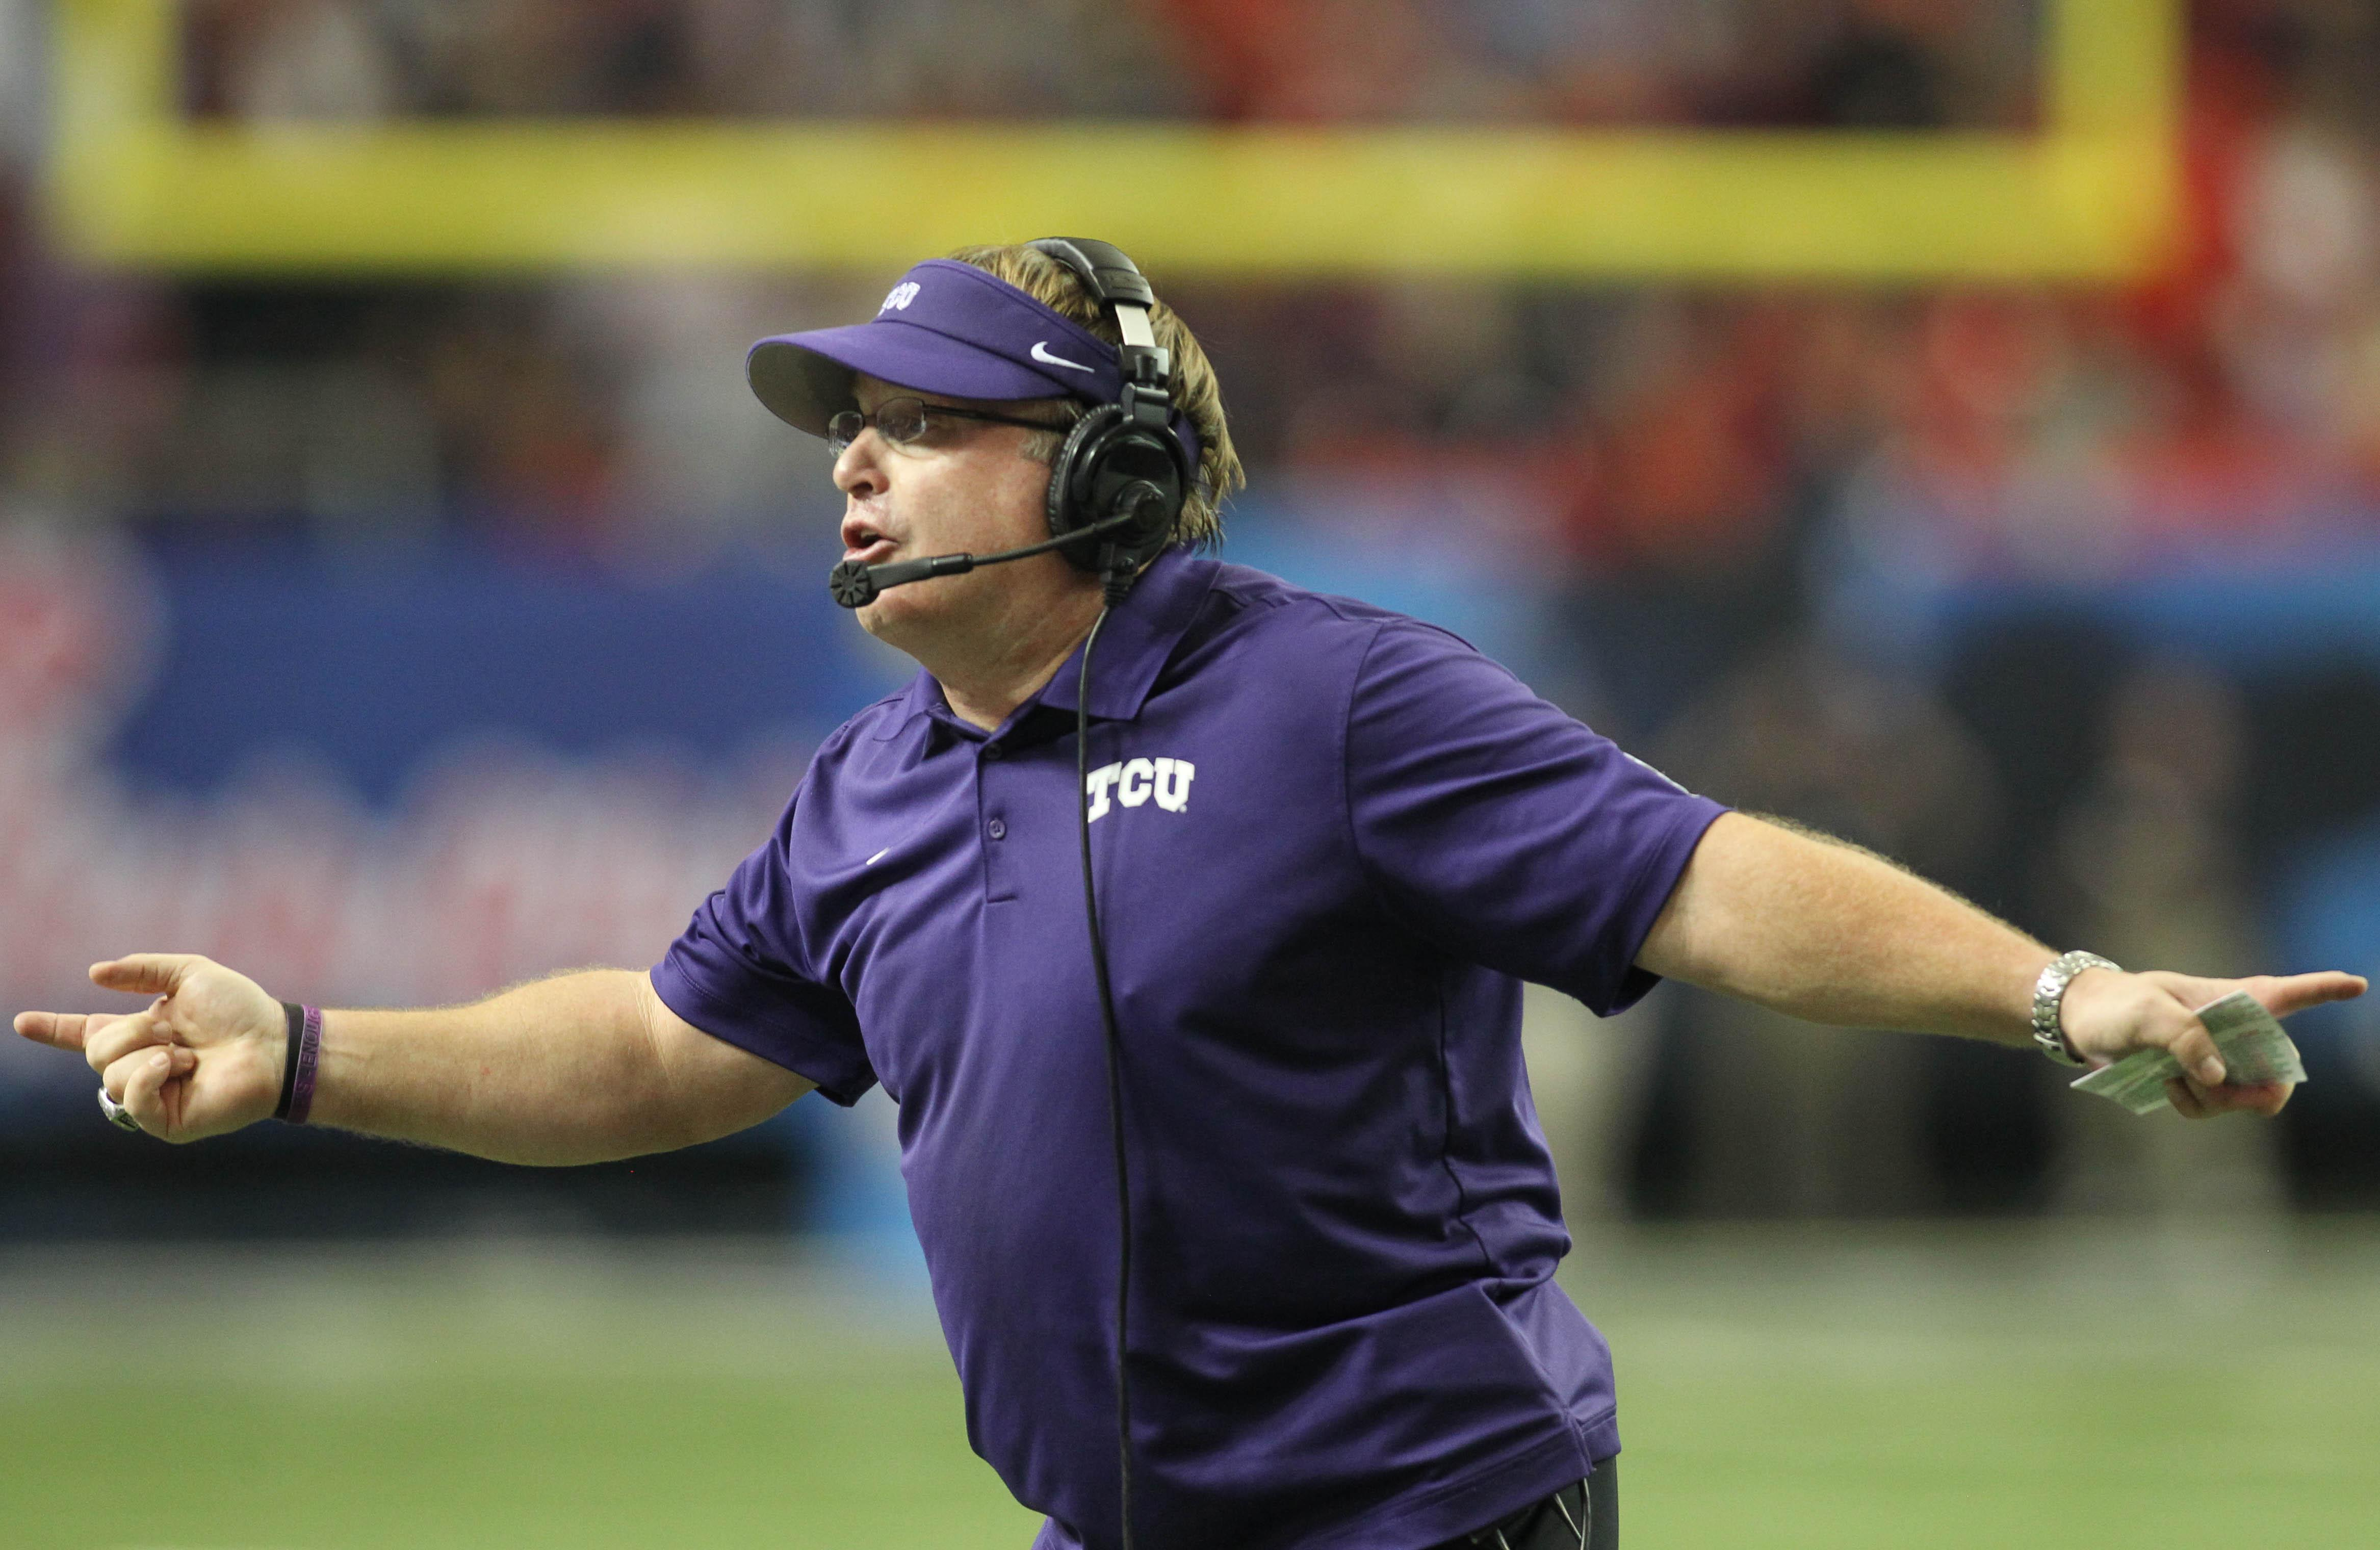 TCU to visit Alabama to analyze the Tide's recruiting practices